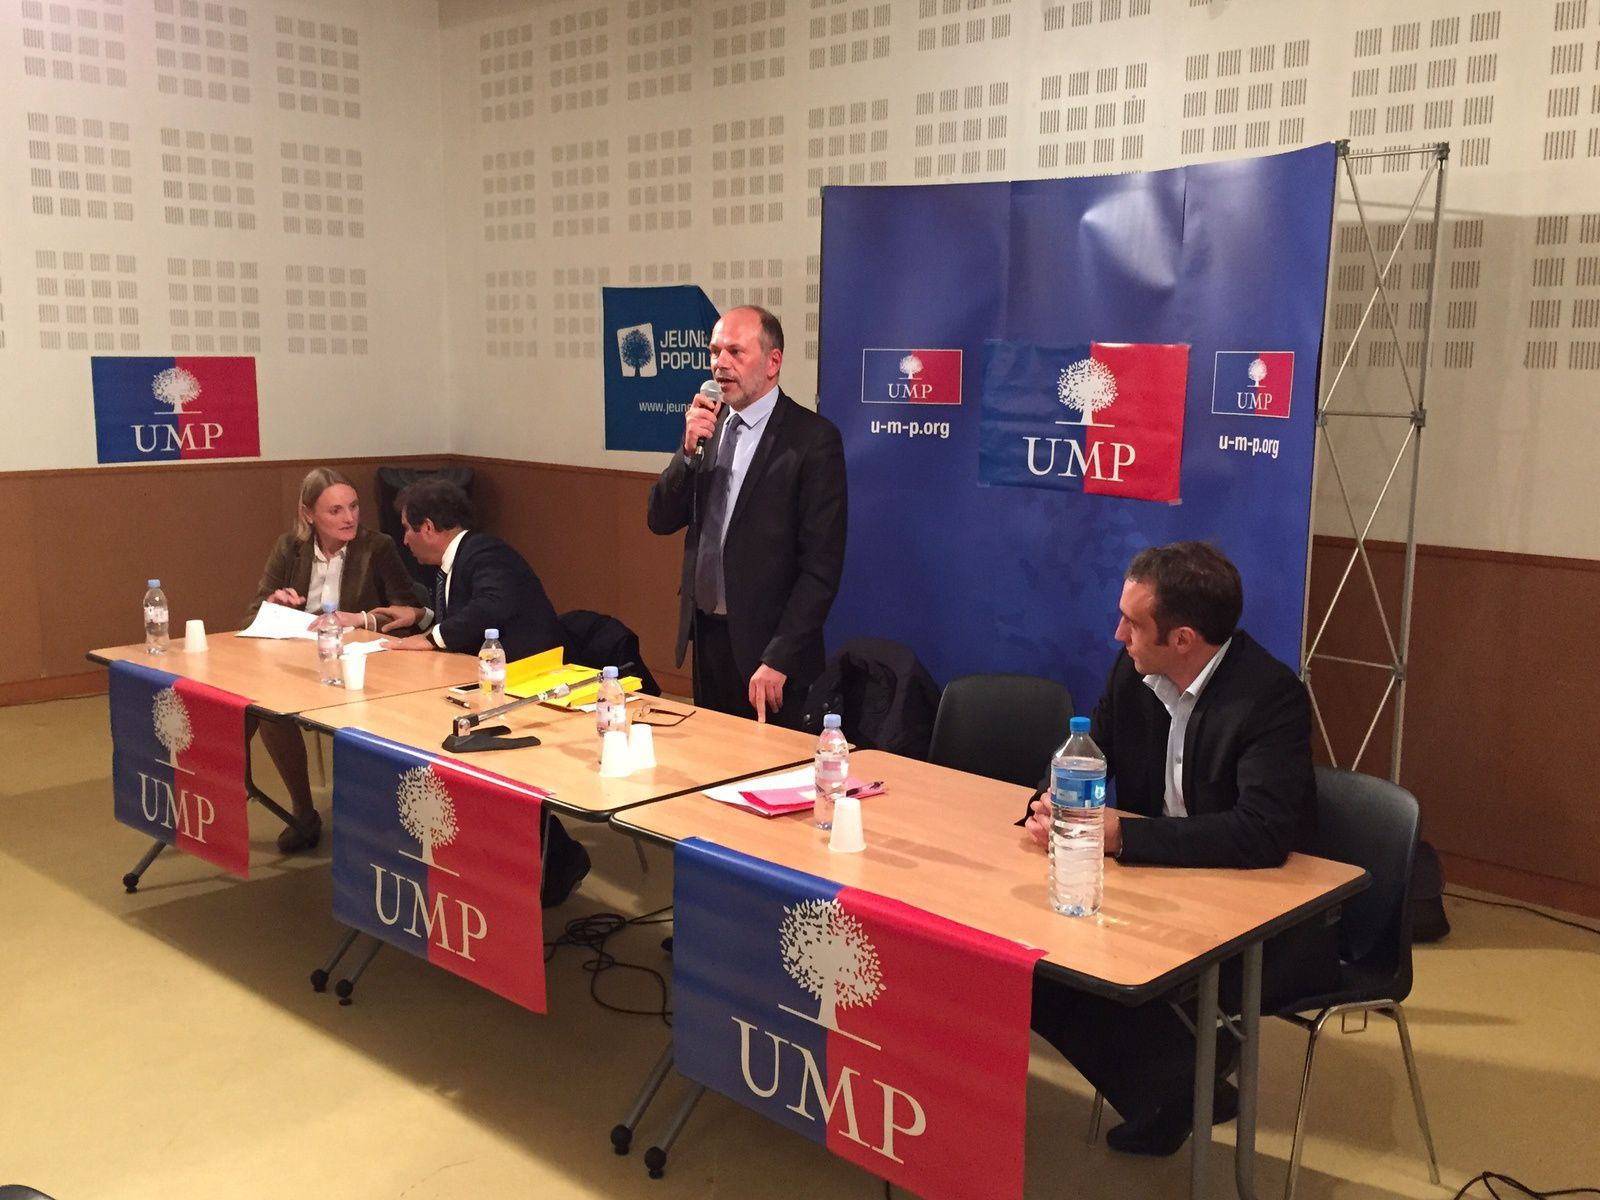 Rencontres unifrance paris